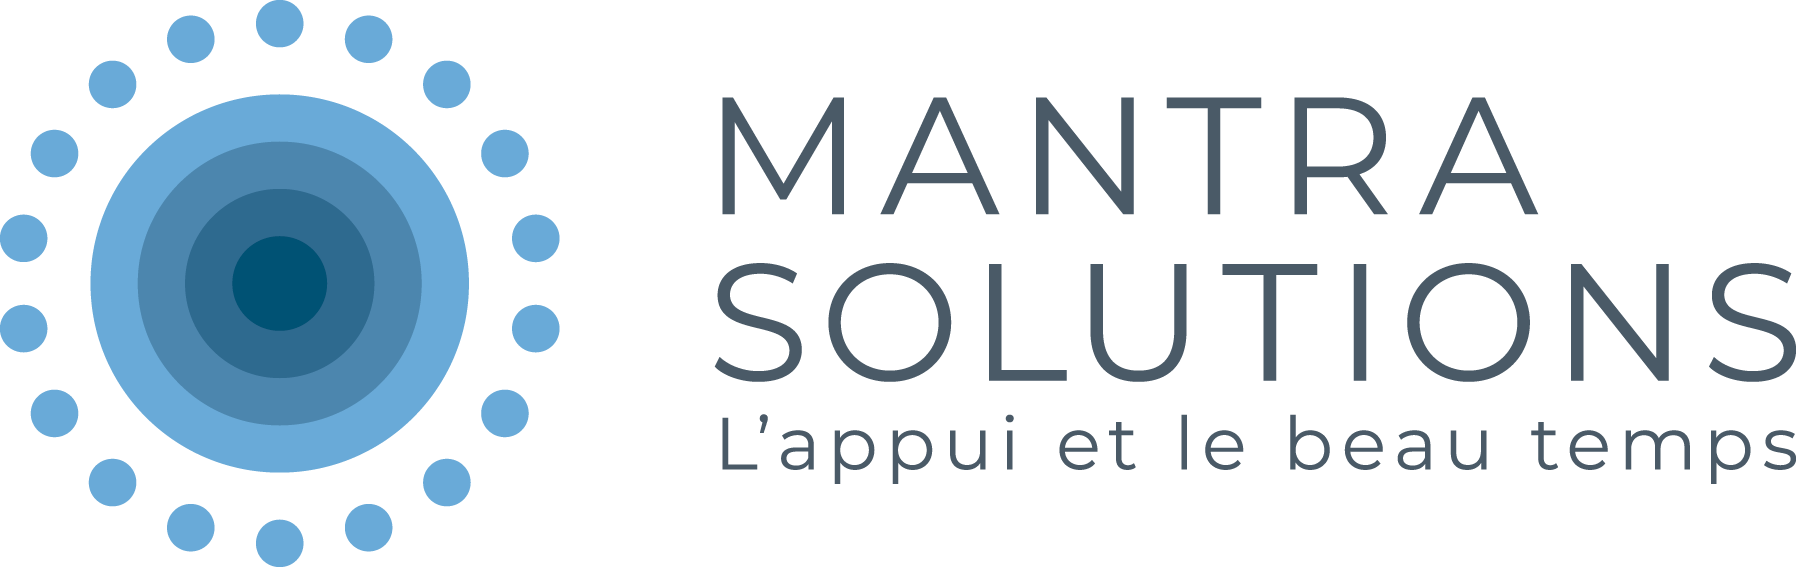 Mantra Solutions Logo CMYK transition